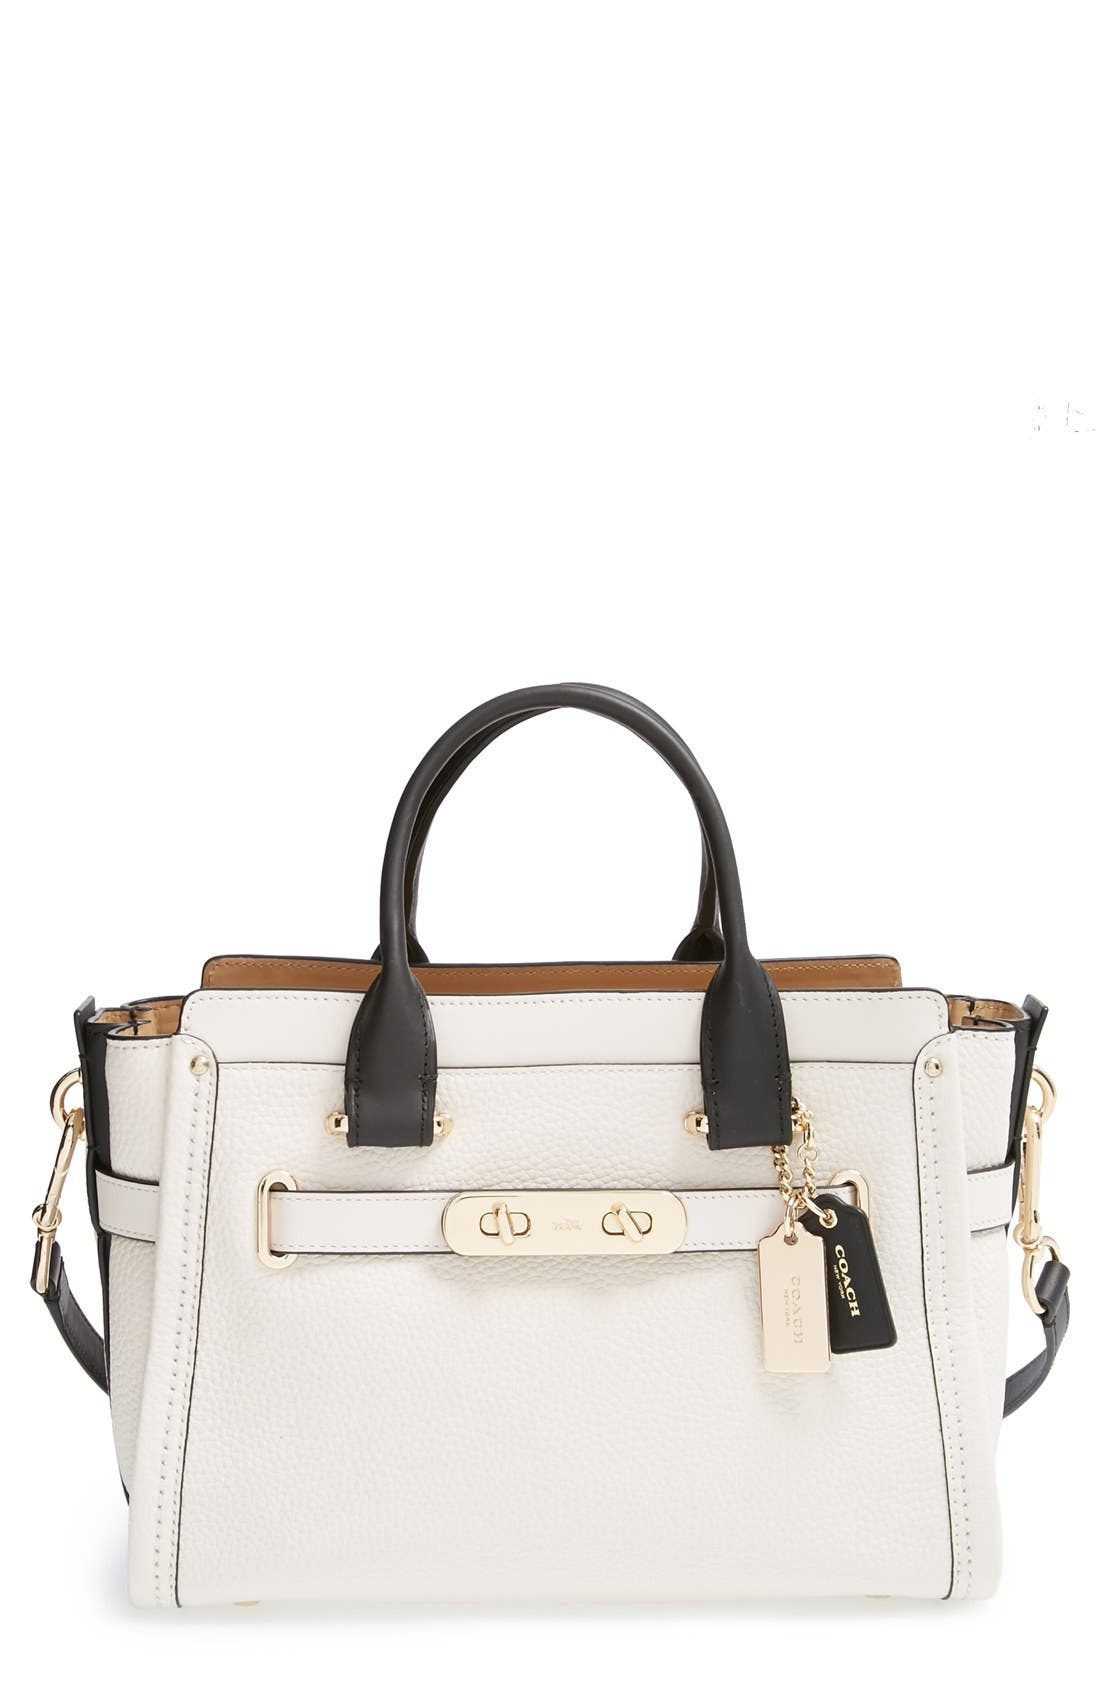 'Swagger 35' Colorblock Leather Satchel, Main, color, 178